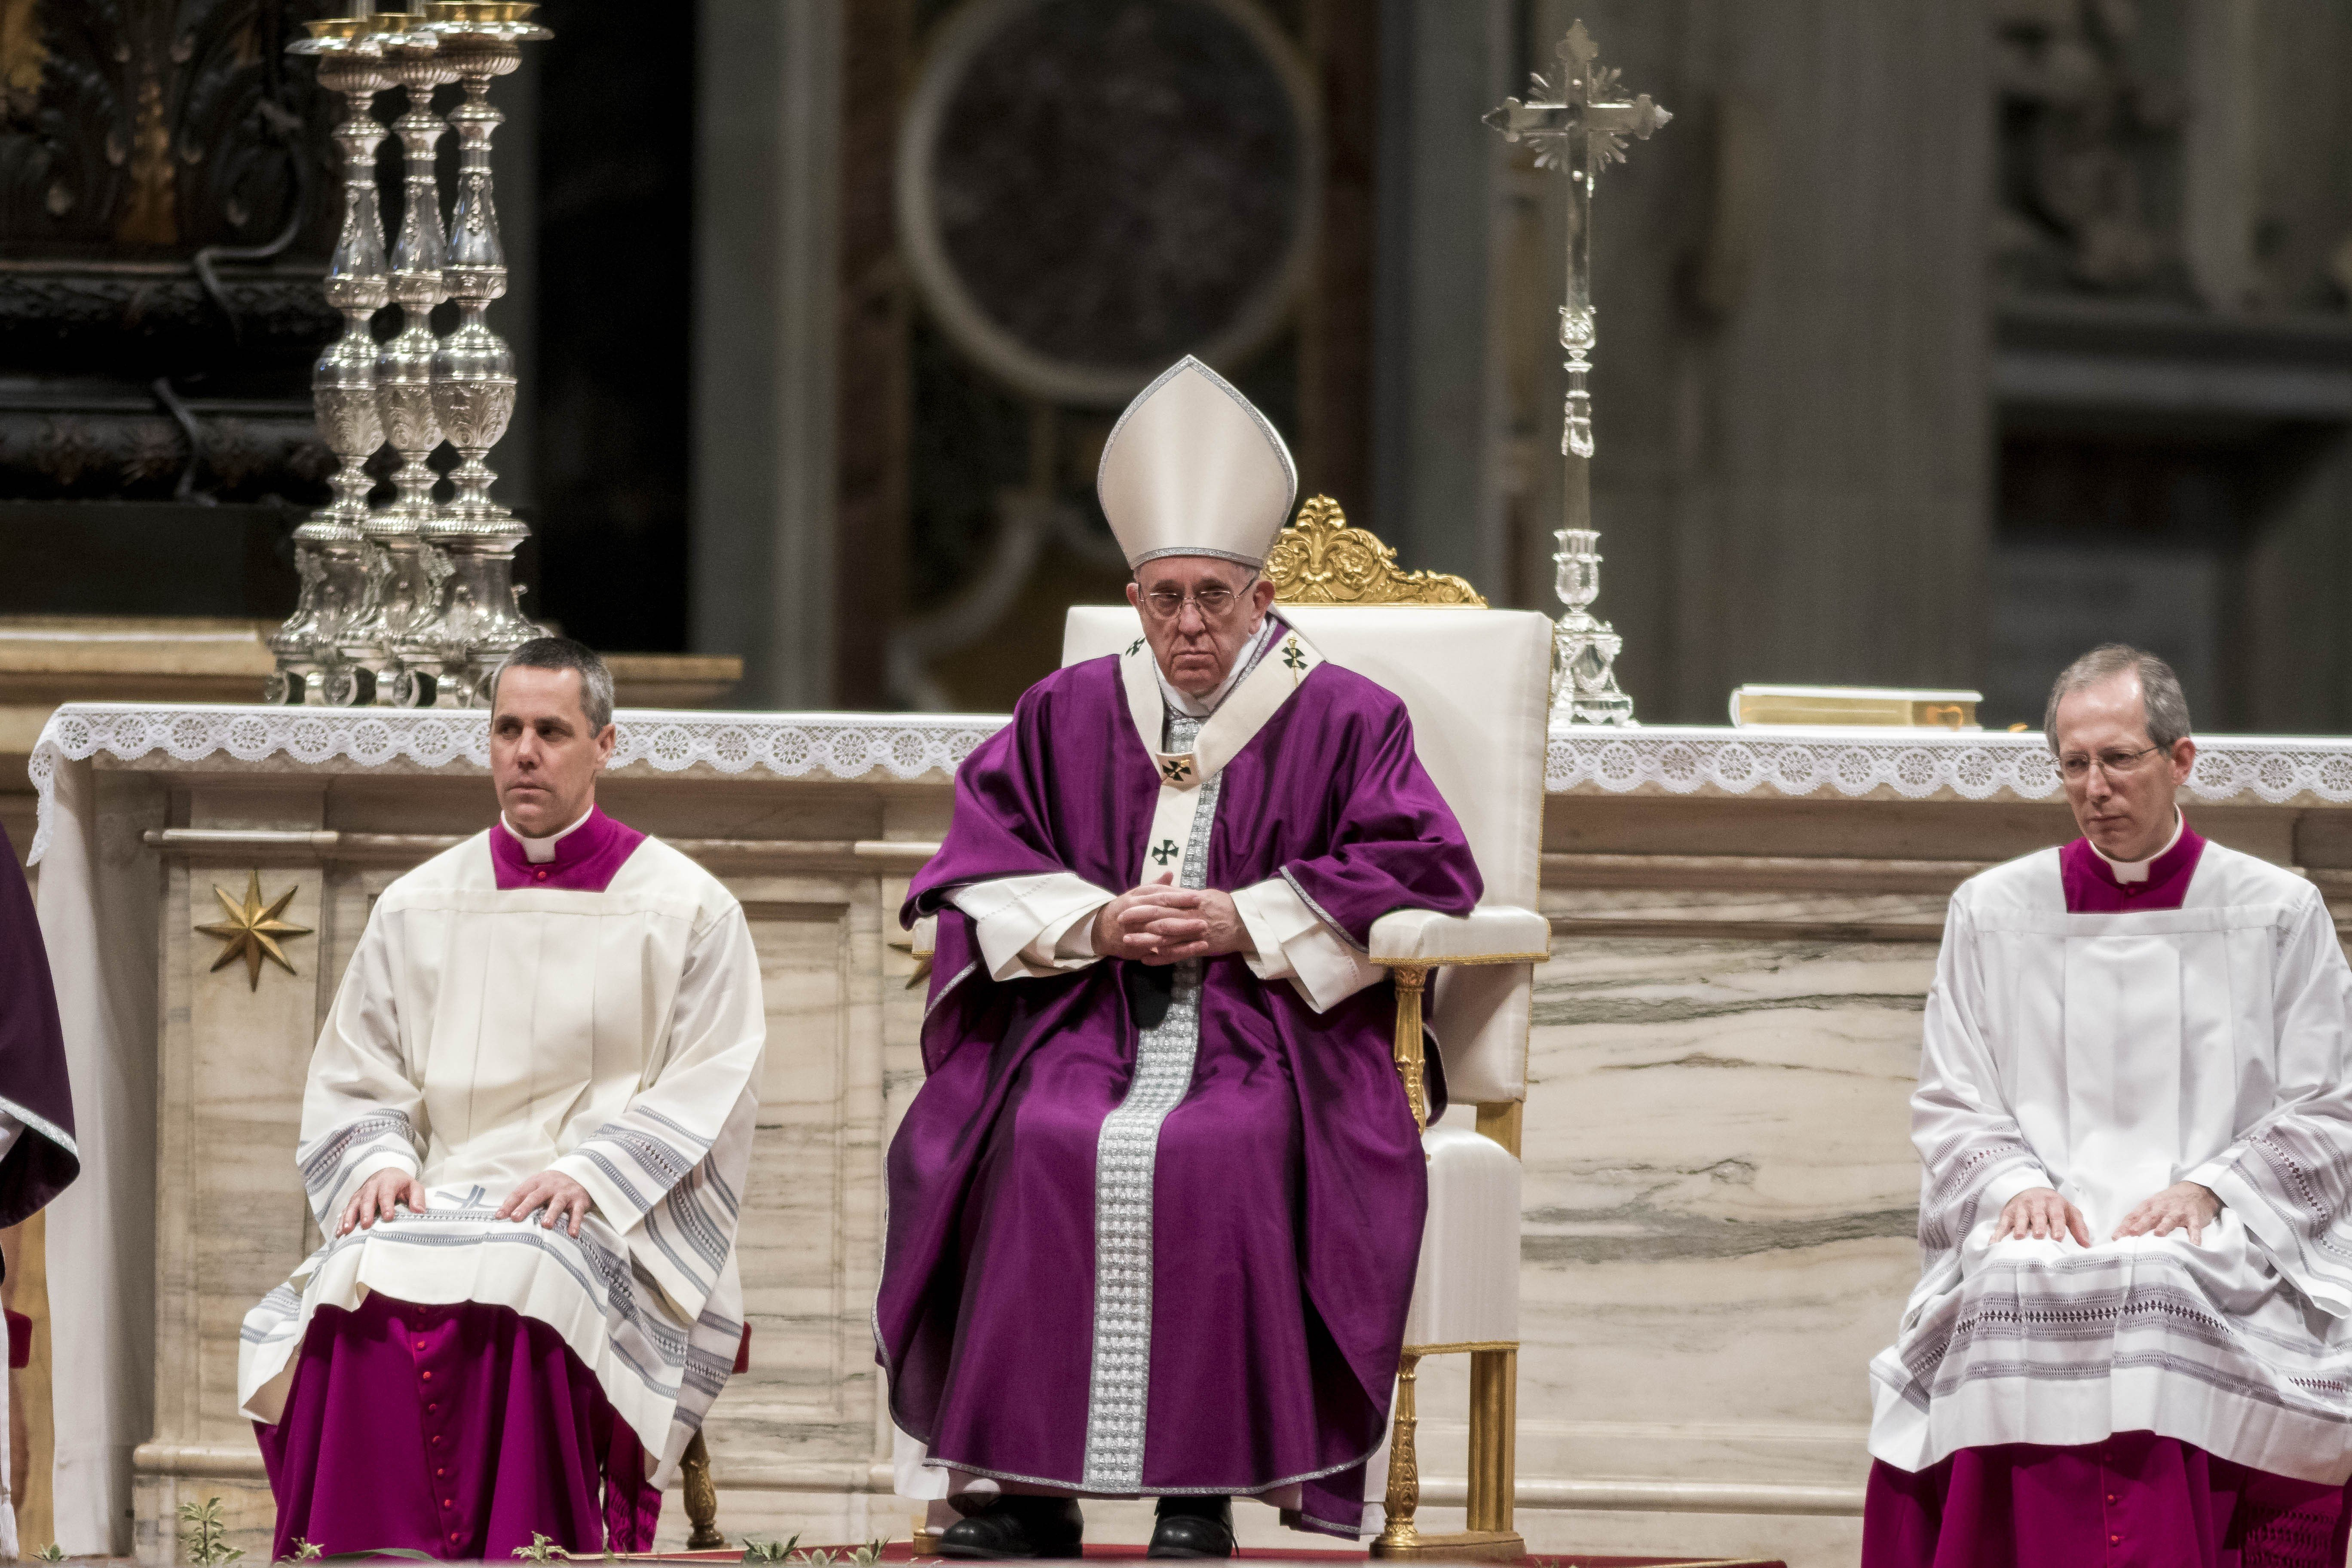 Pope Francis leads the Ash Wednesday mass in St. Peter's Basilica at the Vatican on Feb. 9, 2015.